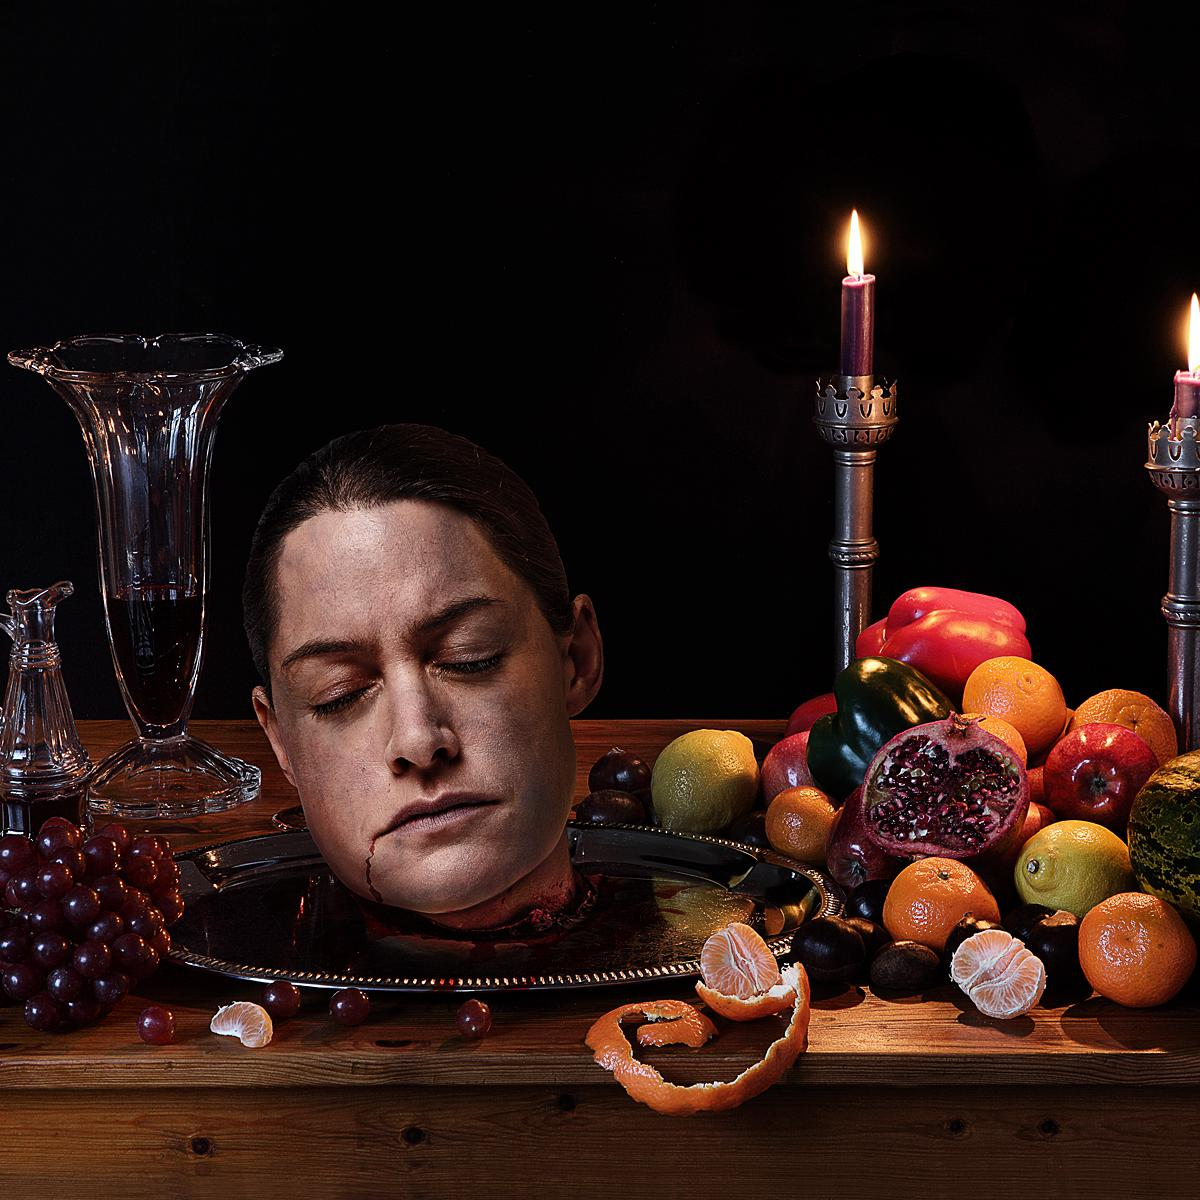 Heidi Porter, Vegan and Animal Rights Campaigner, Creative photography by Julian Hanford